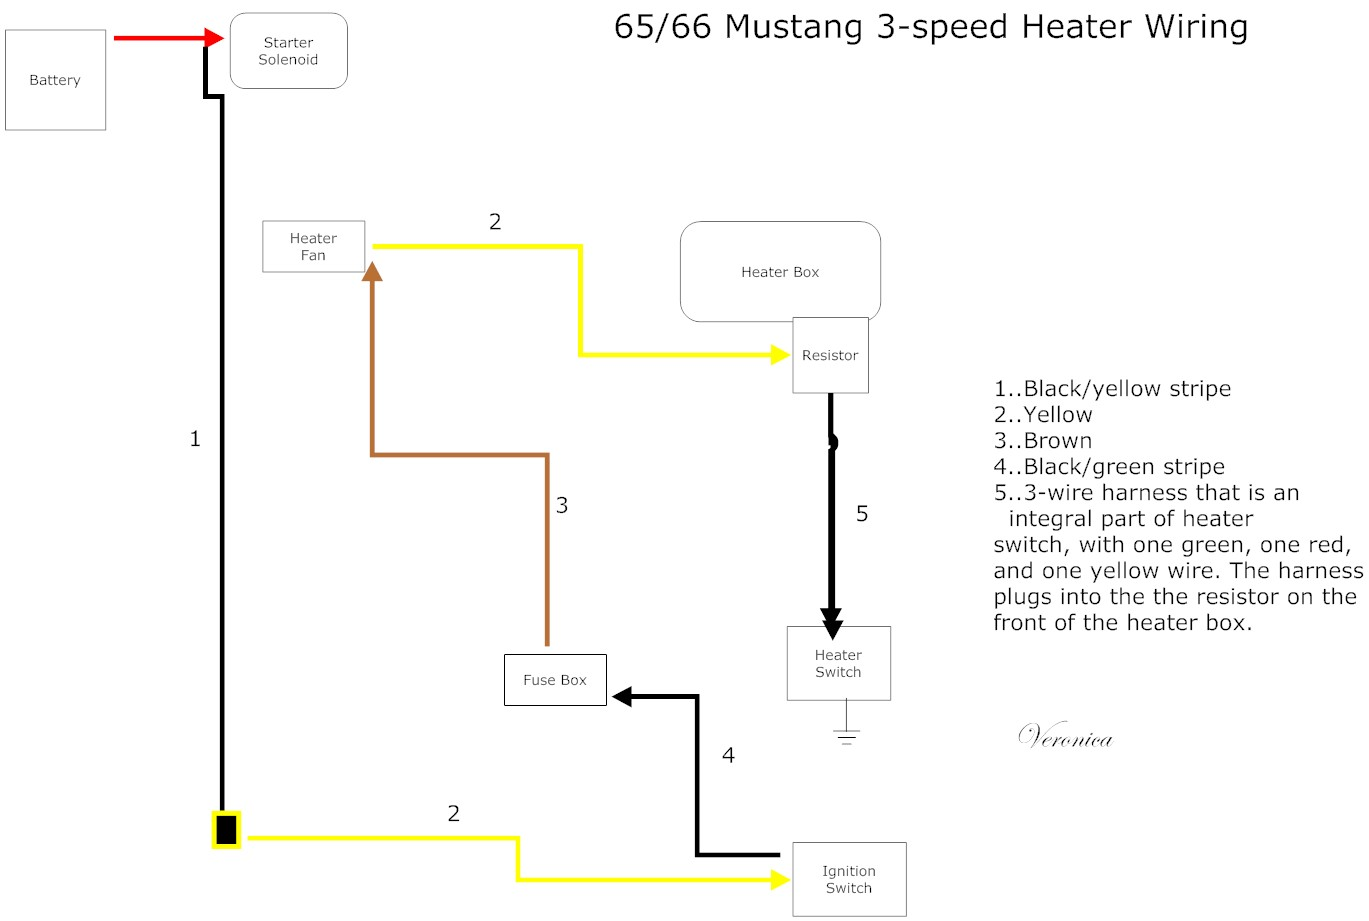 3+speed+heater 65 mustang heater wiring trusted wiring diagram